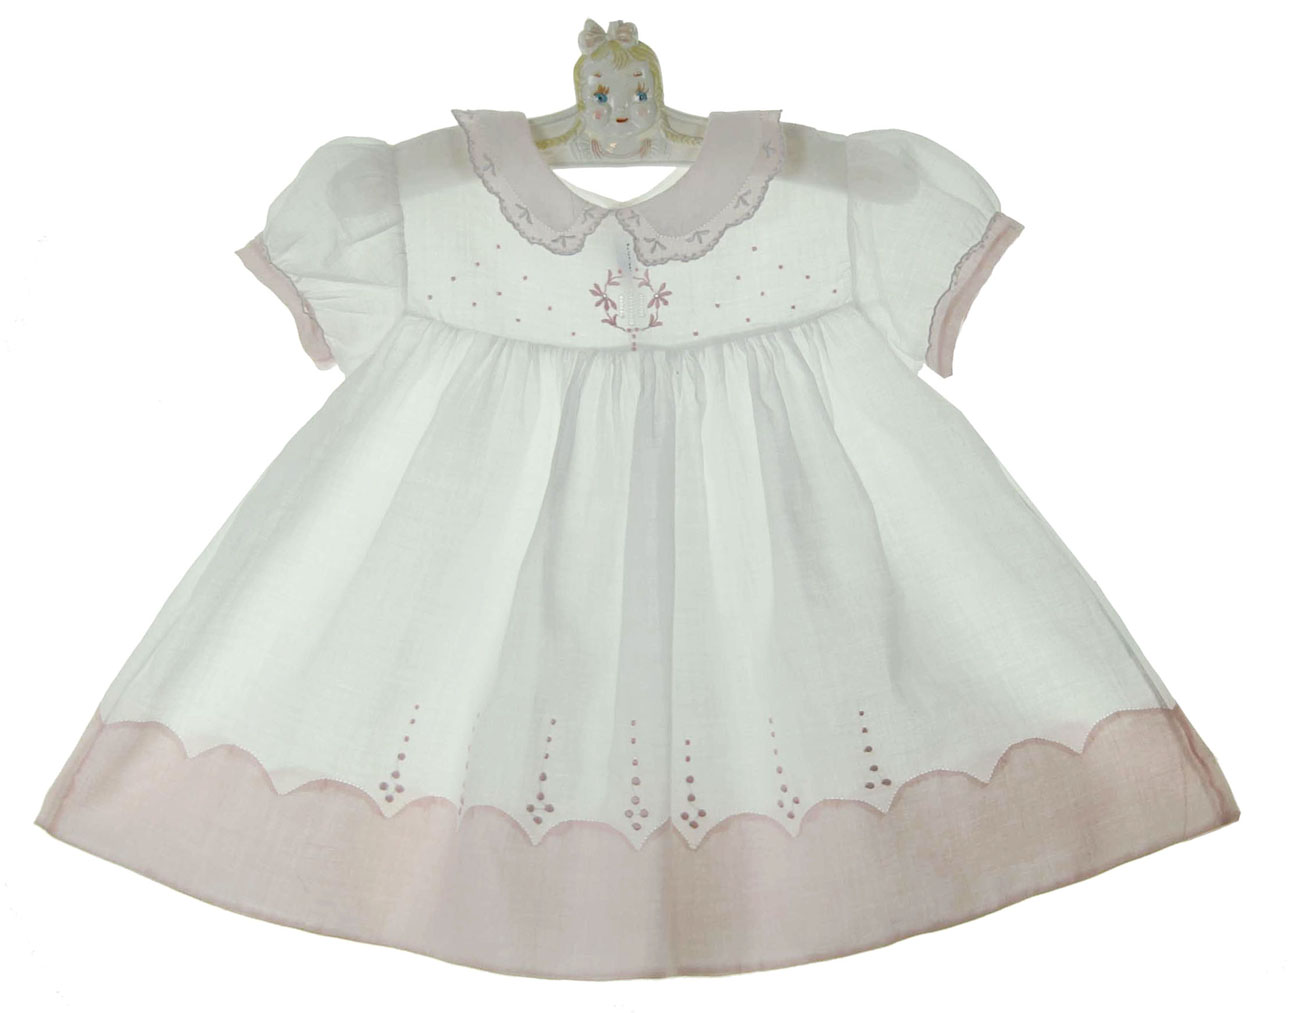 eaffbe899 Madeira baby dress,heirloom Madeira dress,heirloom baby dresses ...